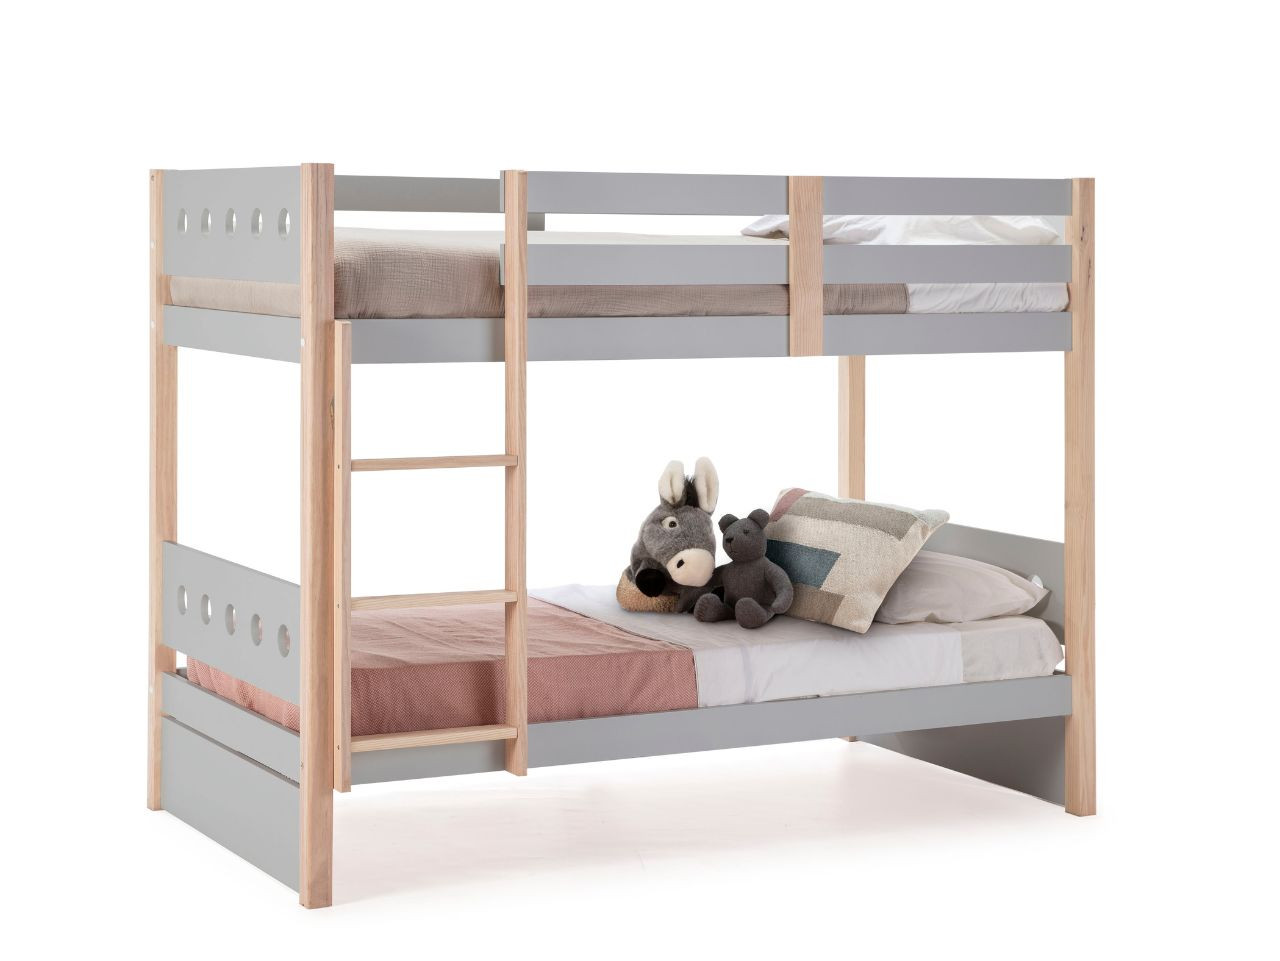 Sofas baratos madrid sof madrid relax plazas chocolate for Sofas rinconeras ikea